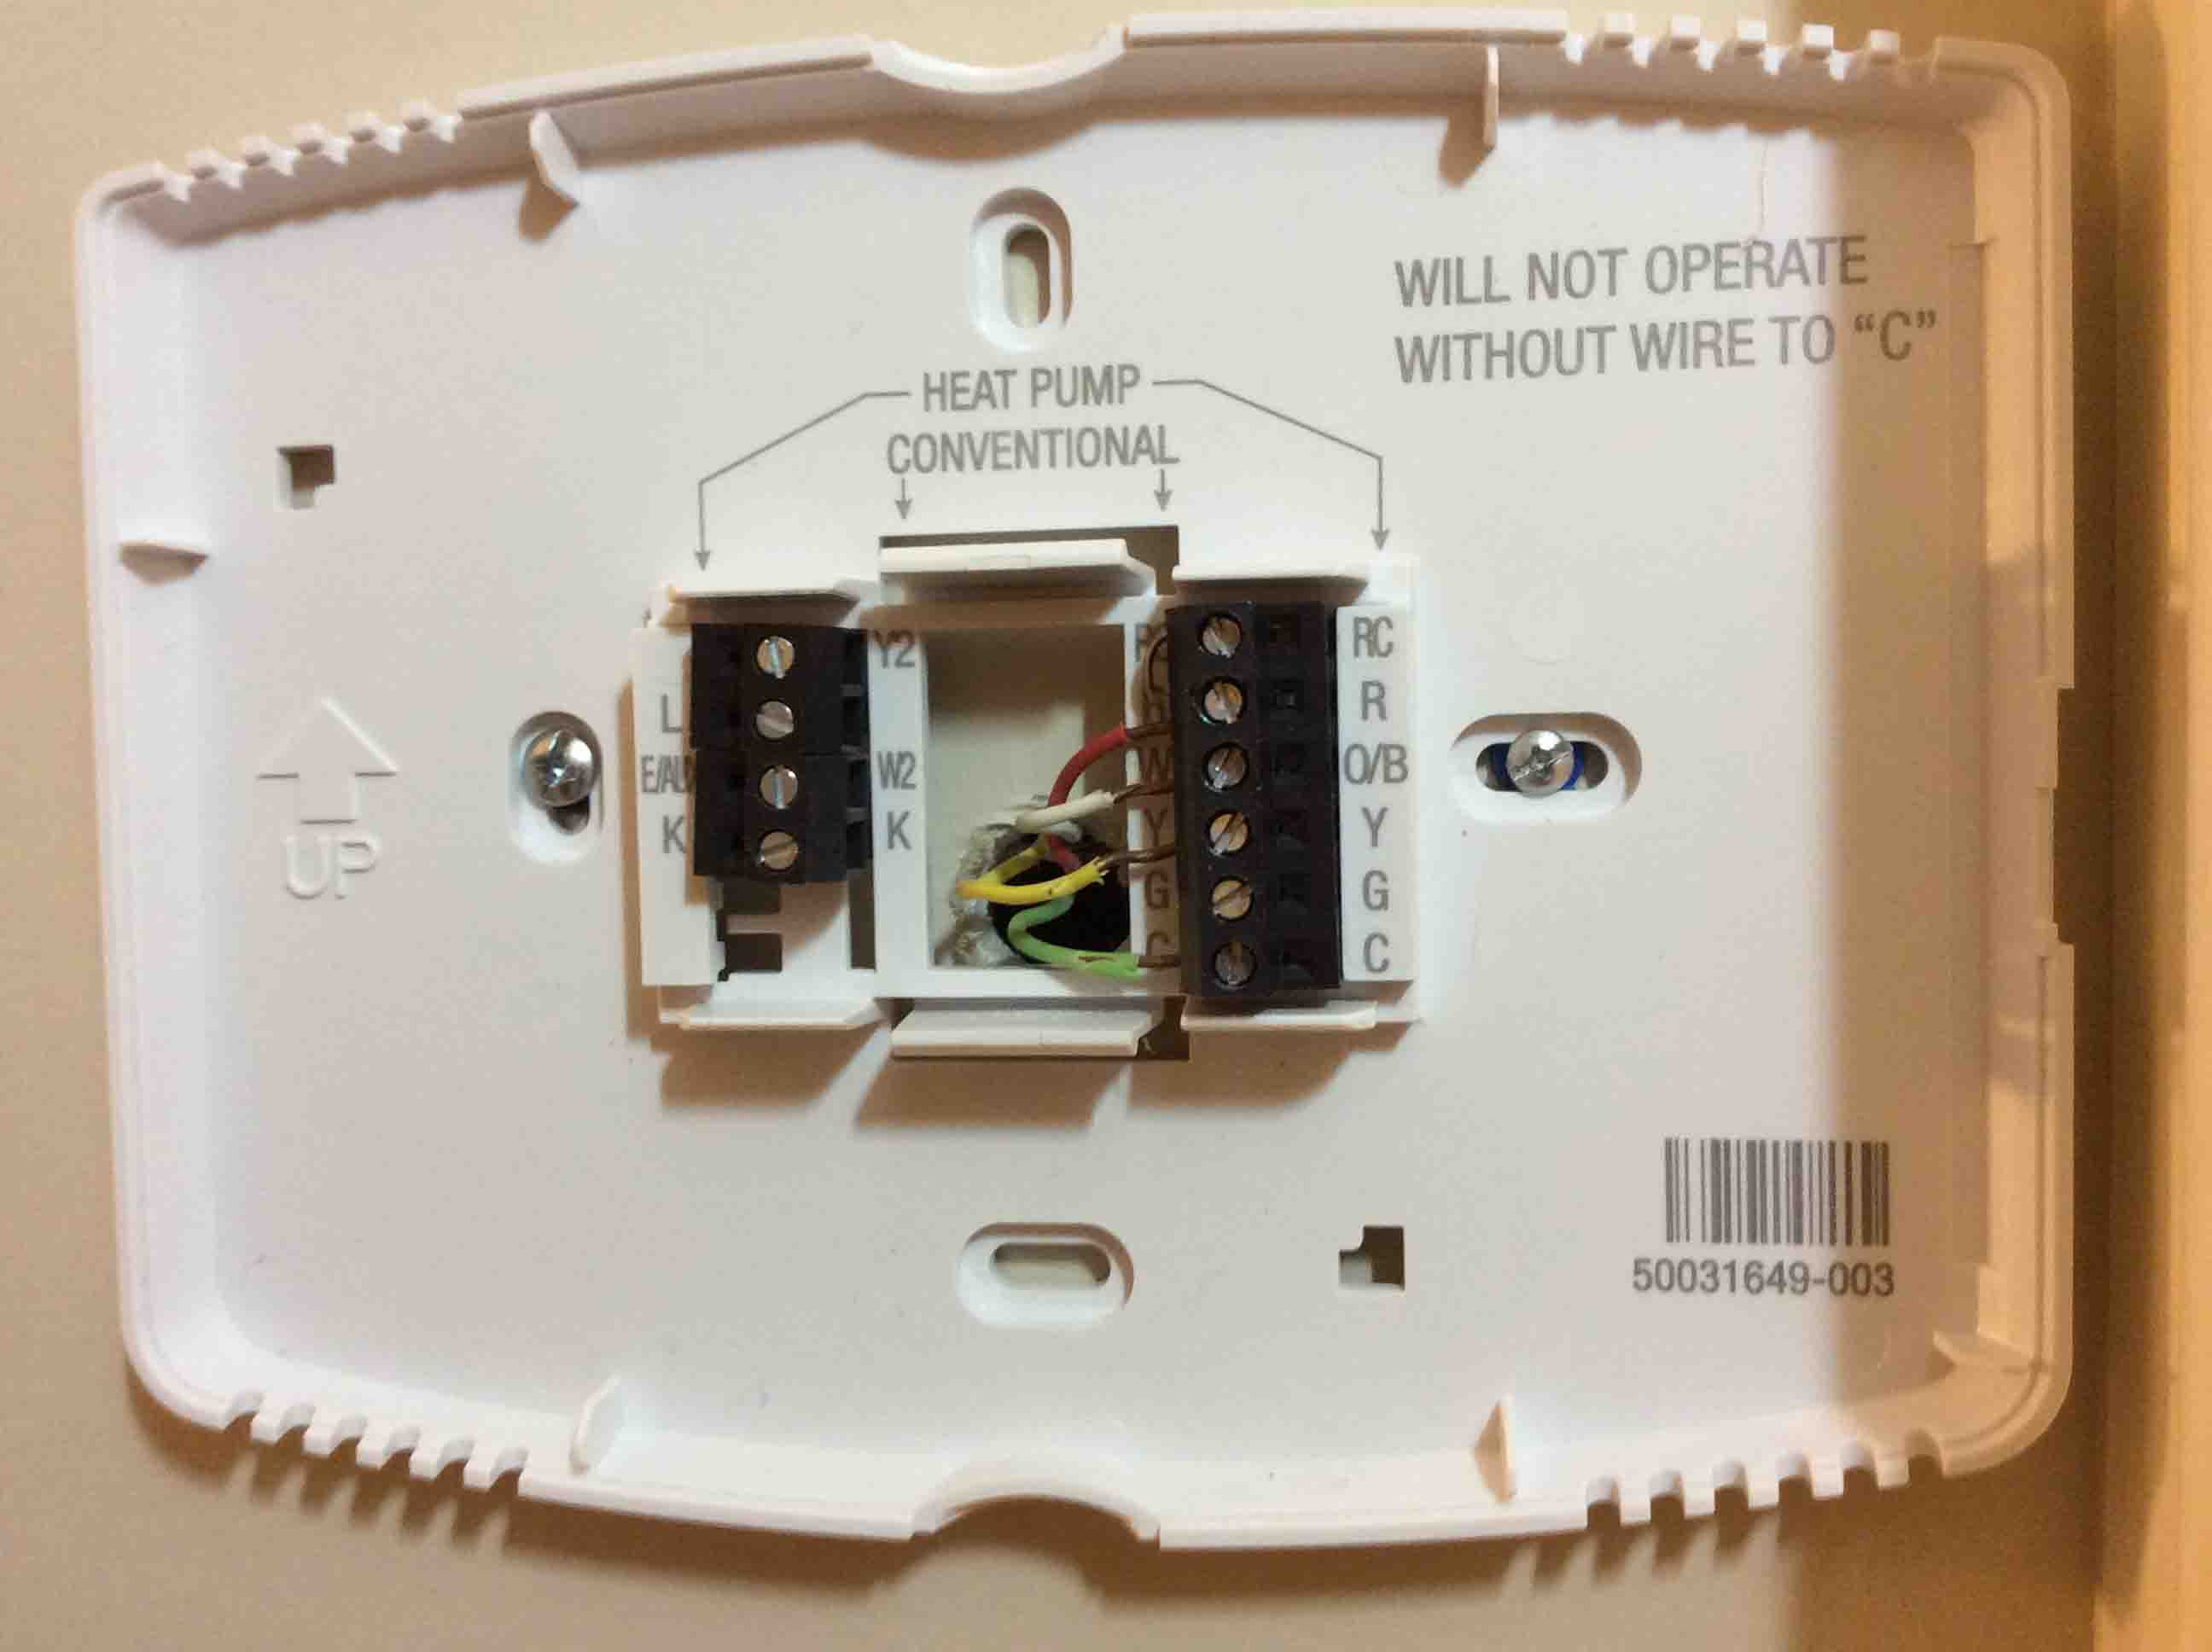 how to wire a honeywell thermostat with 4 wires tom's tek stop Honeywell RTH7500D Wiring-Diagram  Honeywell Programmable Thermostat Wiring Schematic Diagram Honeywell Heat Pump Thermostat Wiring Diagrams